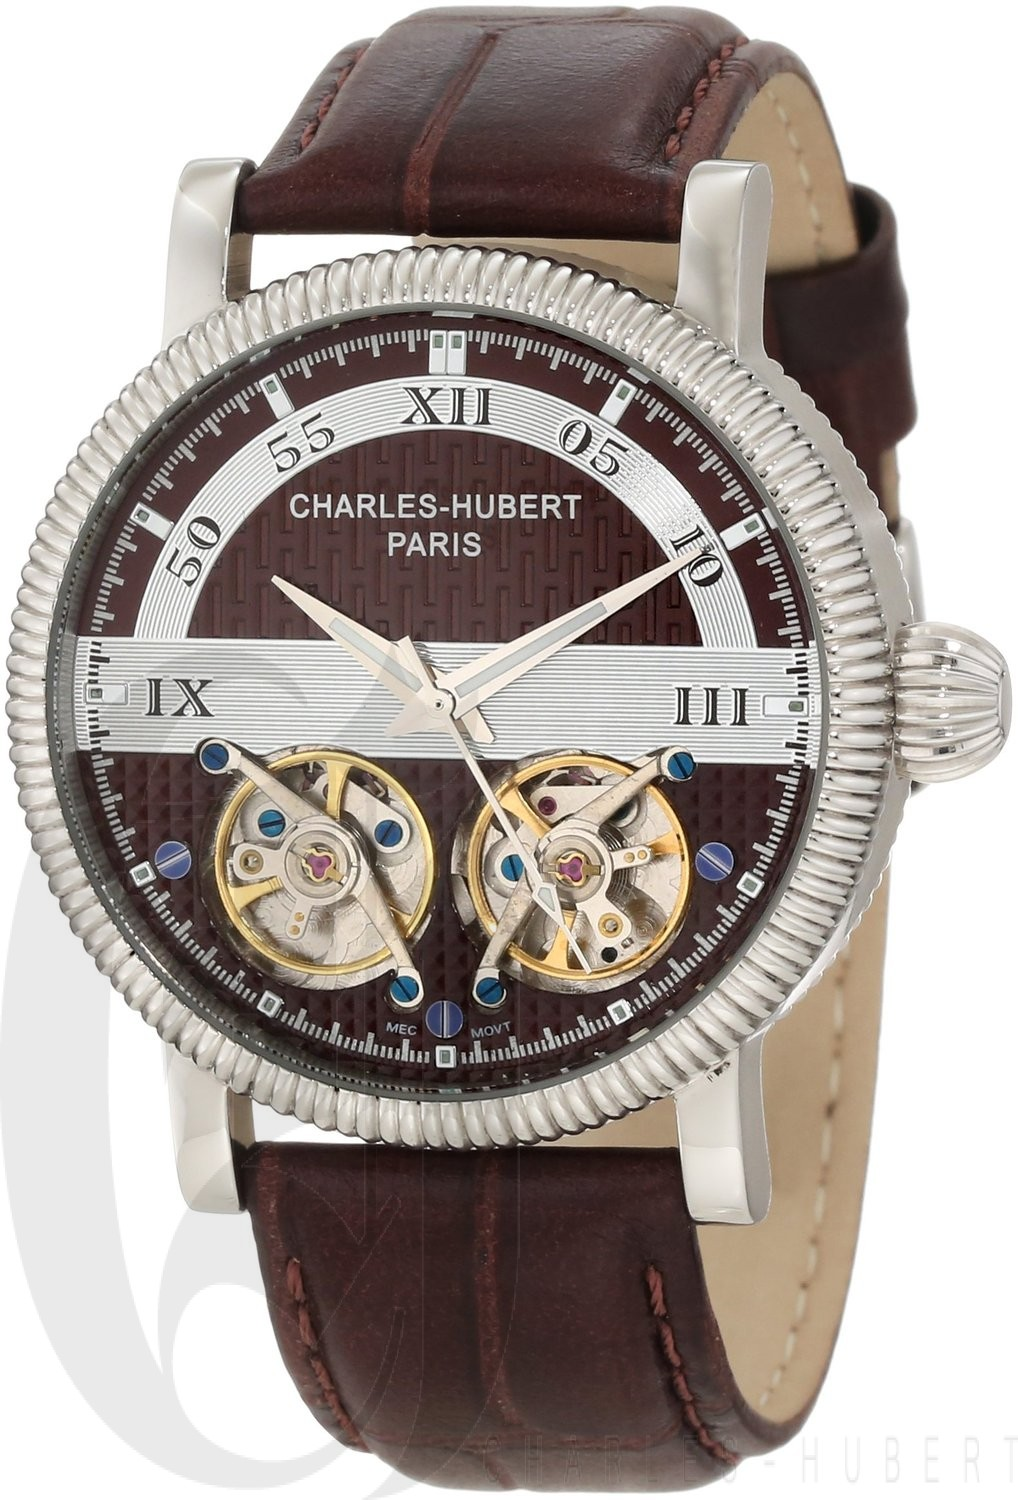 Charles-Hubert Paris Men's Stainless Steel Automatic Watch